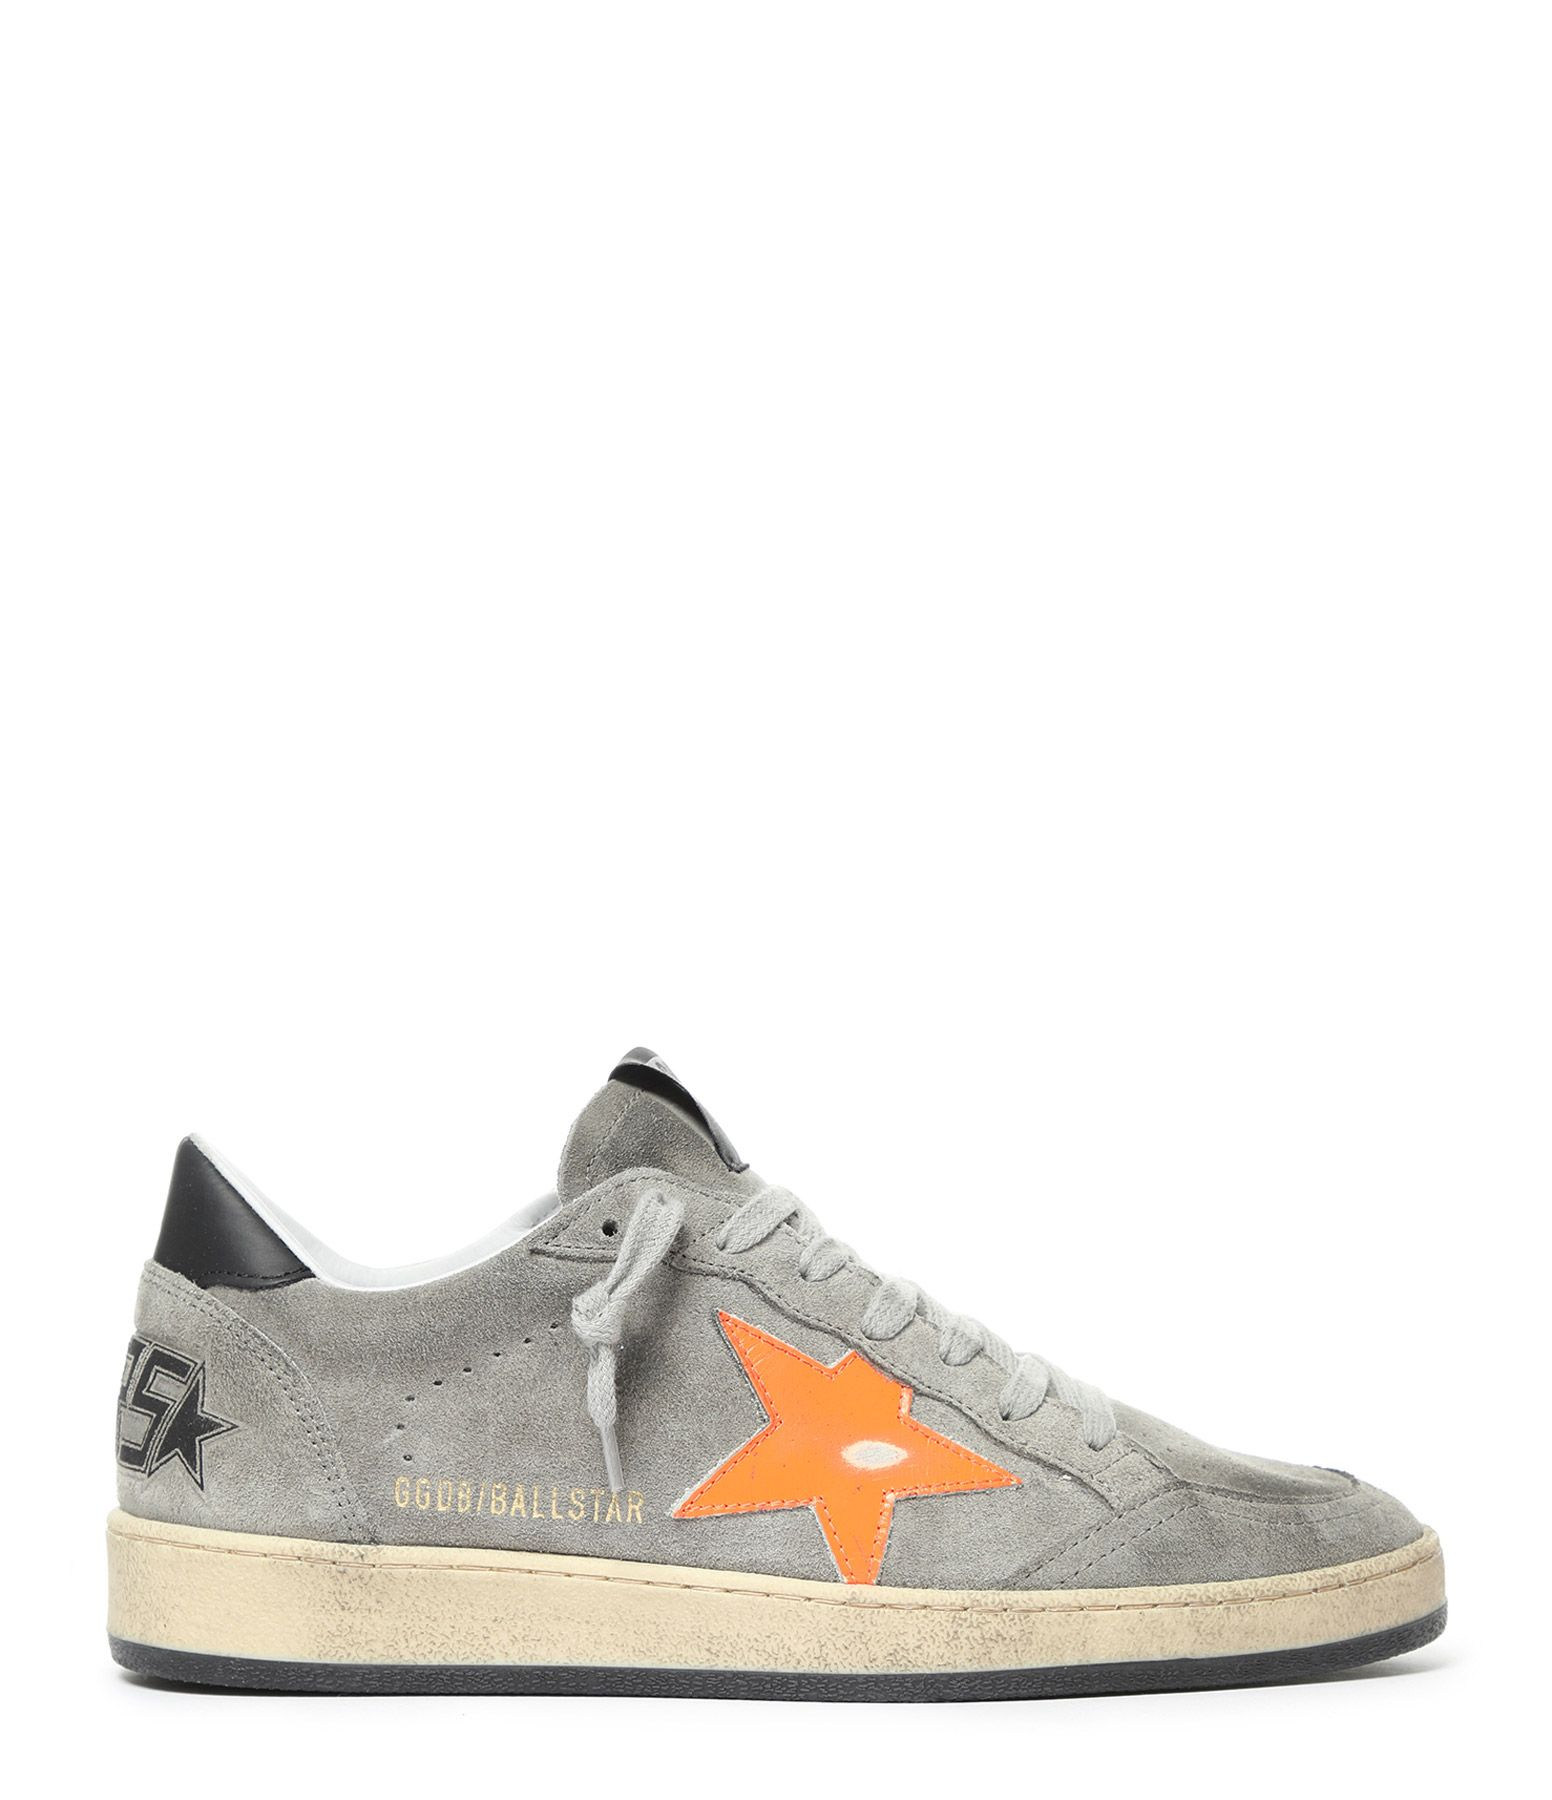 Baskets Homme Ball Star Cuir Gris Orange Fluo en 2020 ...